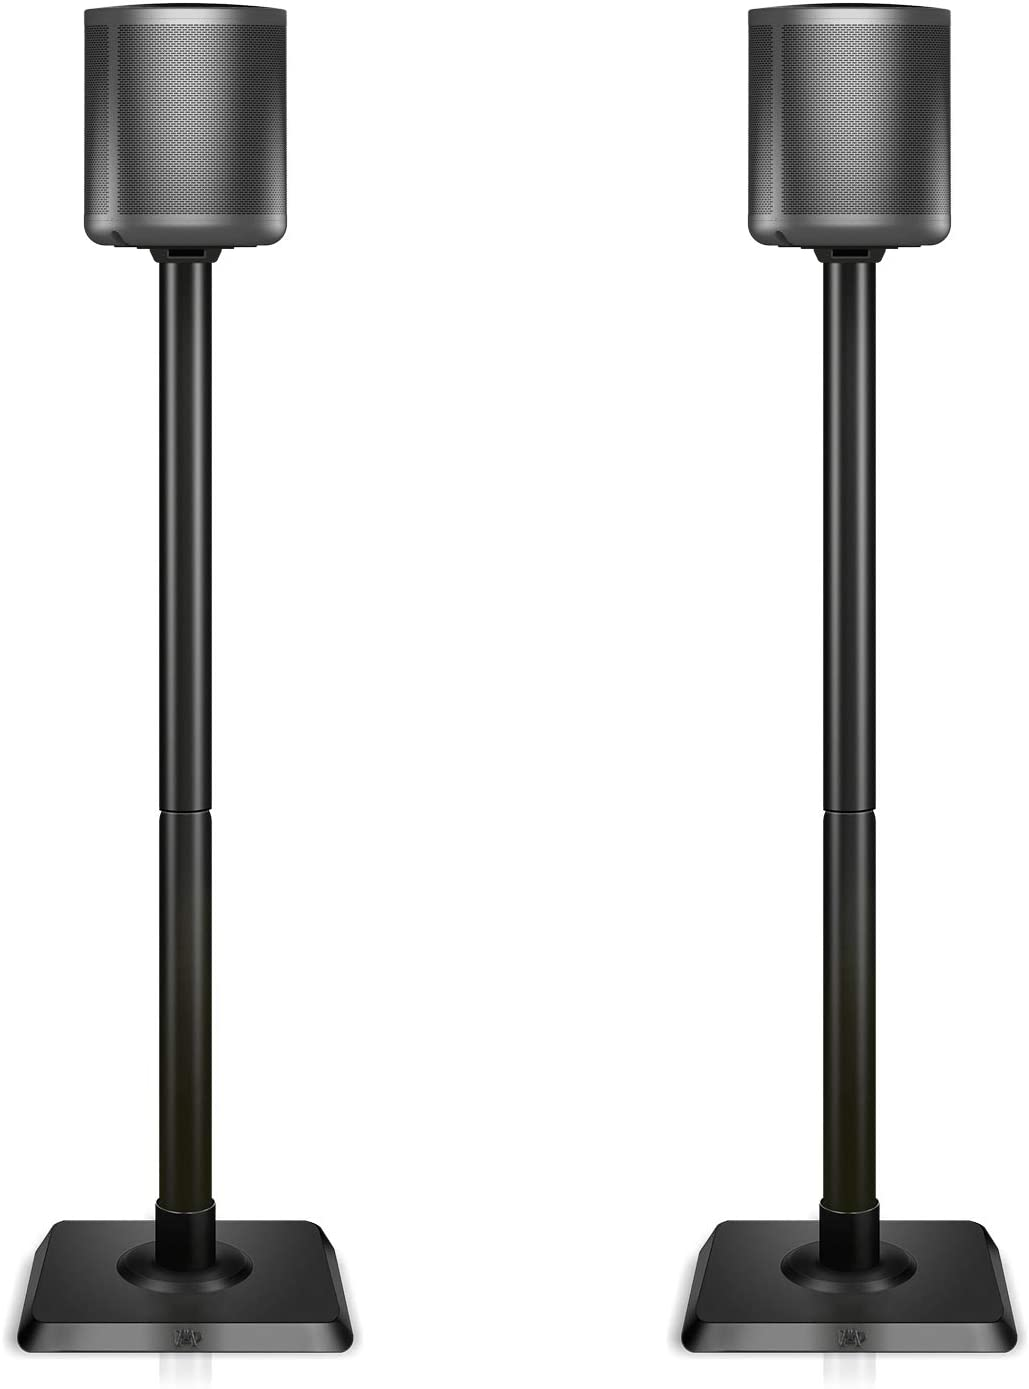 Mounting Dream Speaker Stands for Satellite & Small Bookshelf Speakers - Set of 2 Floor Stand Mount for Bose Polk JBL Sony Yamaha and Others - 11LBS Capacity MD5402 (Speakers Not Included)